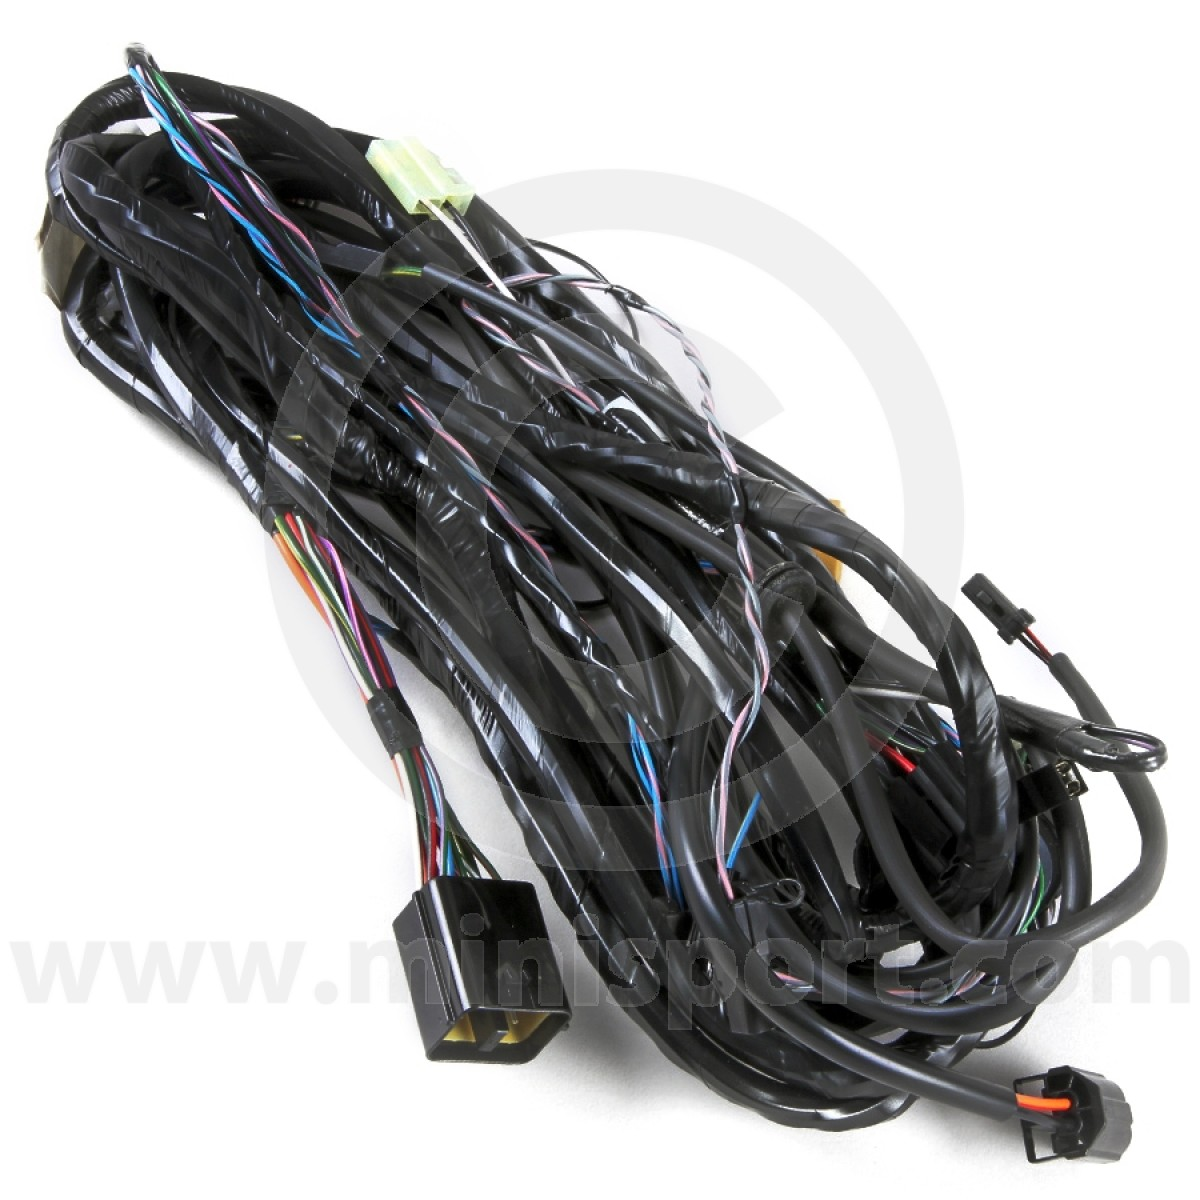 Mpi Wiring Harness on dog harness, pet harness, safety harness, amp bypass harness, maxi-seal harness, oxygen sensor extension harness, pony harness, engine harness, radio harness, battery harness, electrical harness, fall protection harness, alpine stereo harness, obd0 to obd1 conversion harness, nakamichi harness, suspension harness, cable harness,